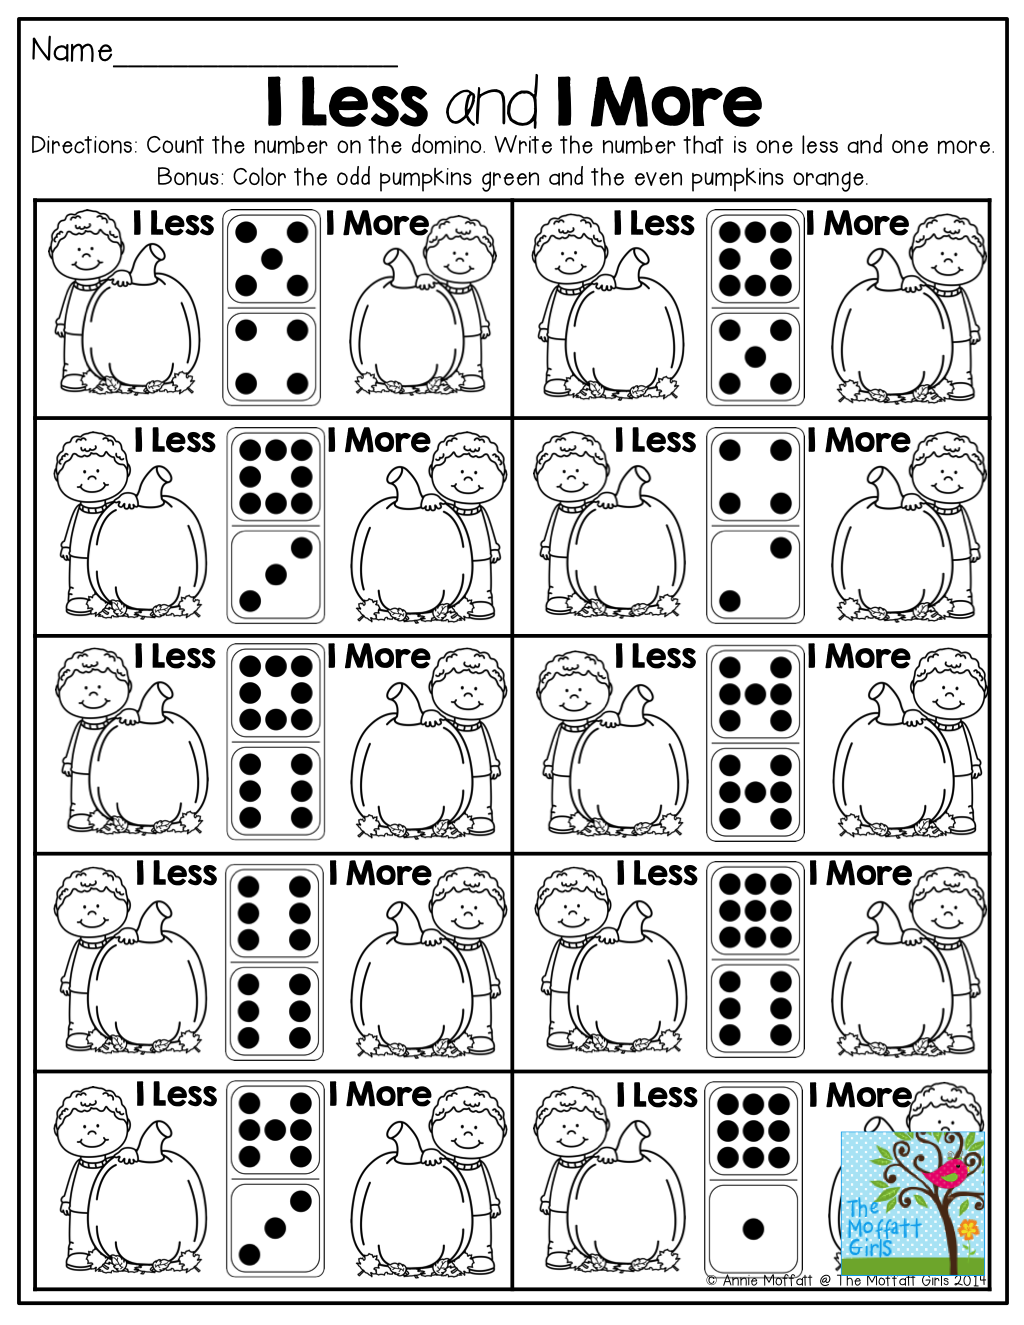 1 Less And 1 More Count The Number On The Domino And Write One Less And One More Math Lessons Kinder Math Math Objective [ 1325 x 1024 Pixel ]